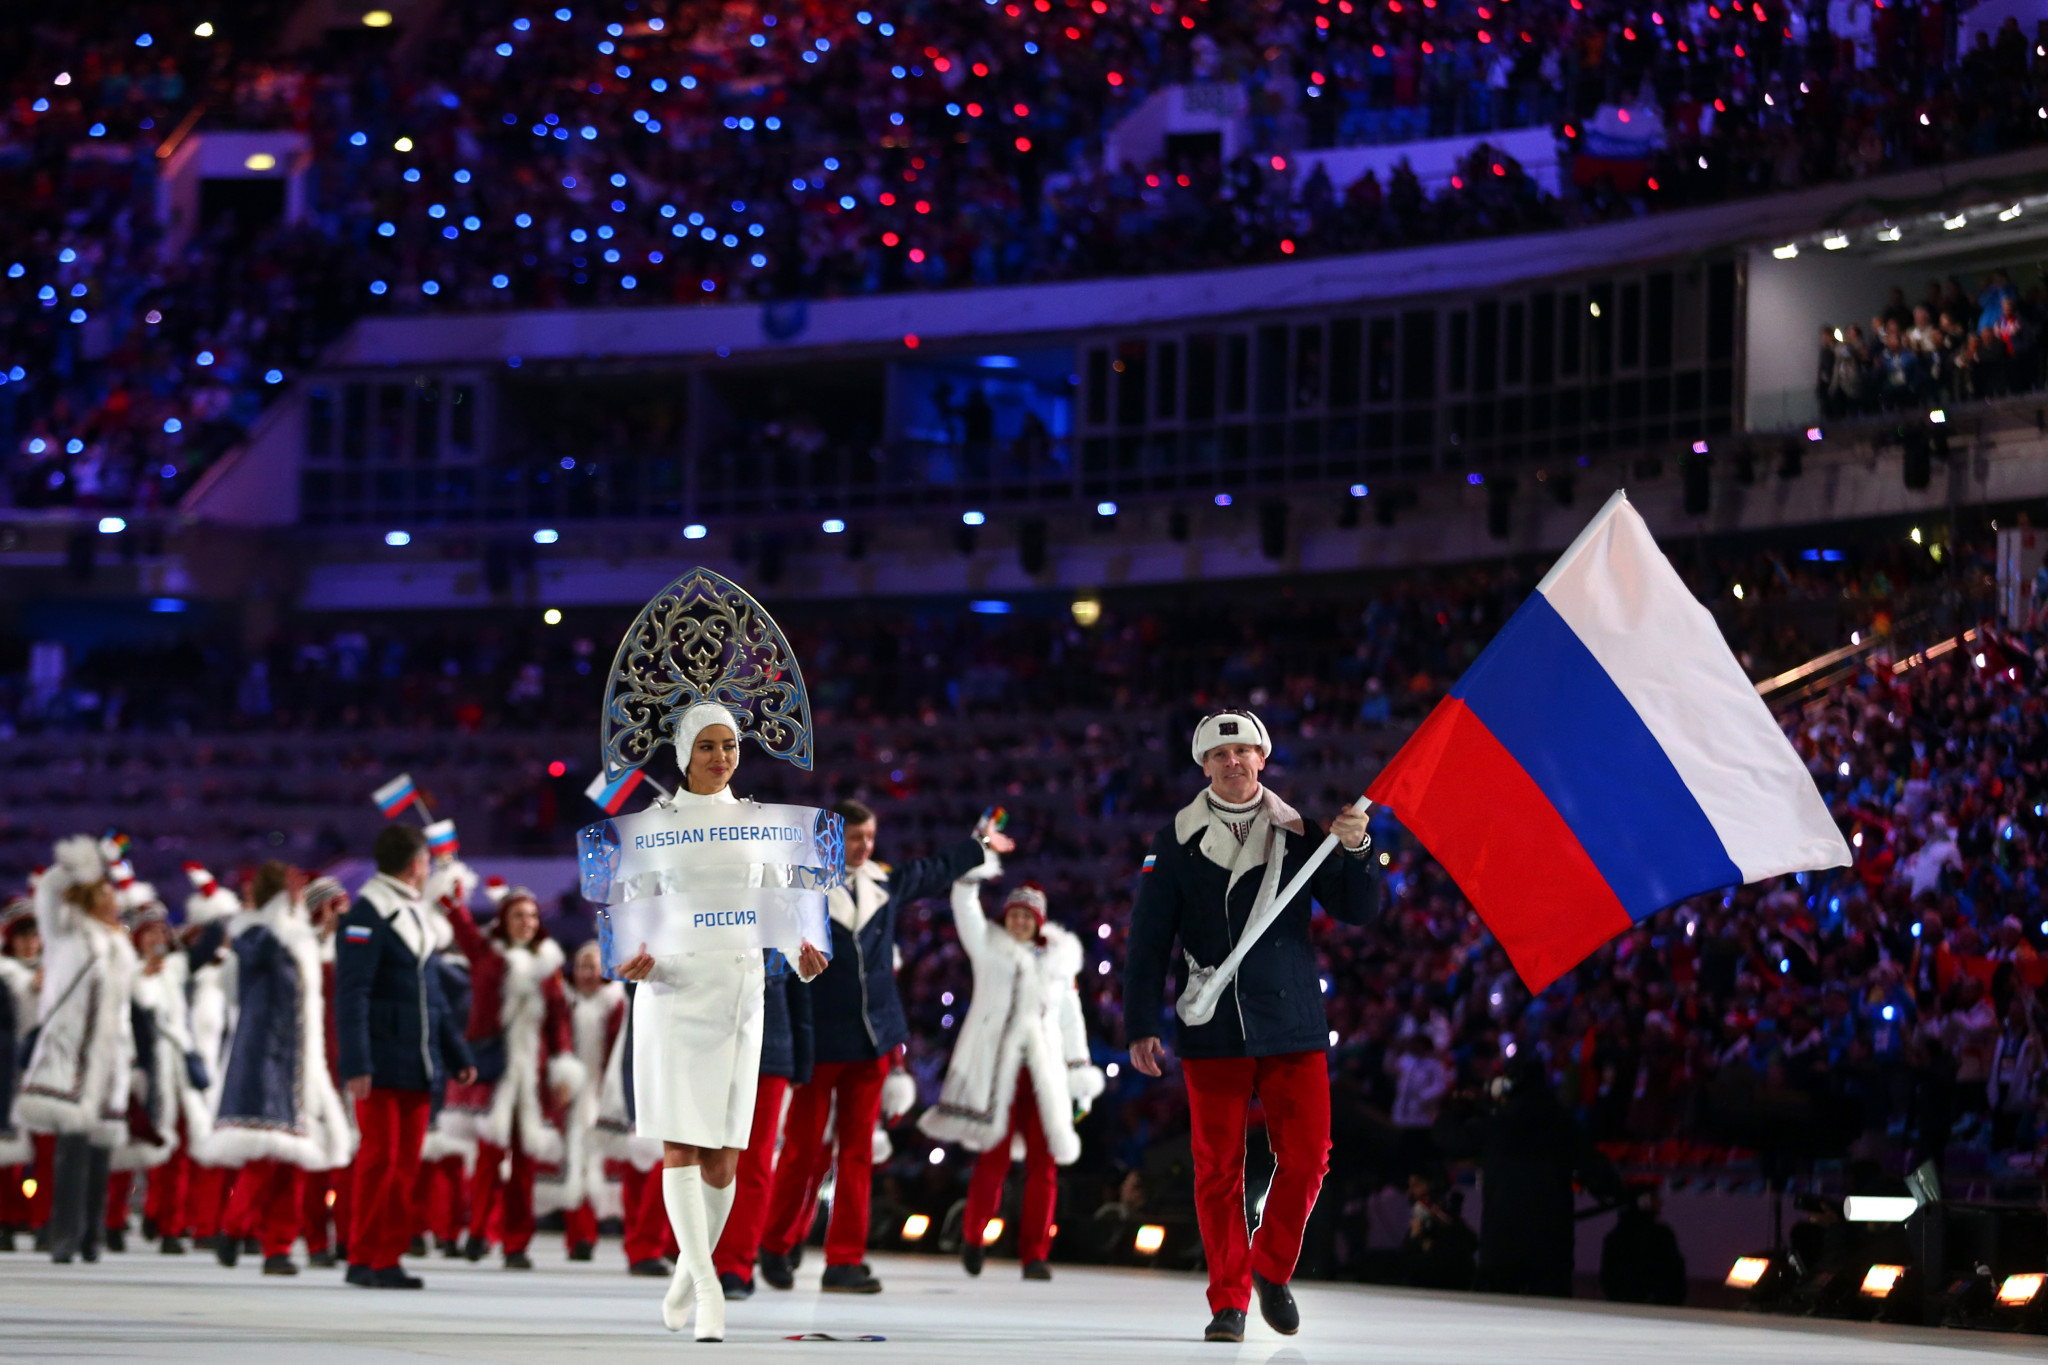 Leading Russian athletes including Sochi 2014 flagbearer Alexander Zubkov are under investigation ©Getty Images